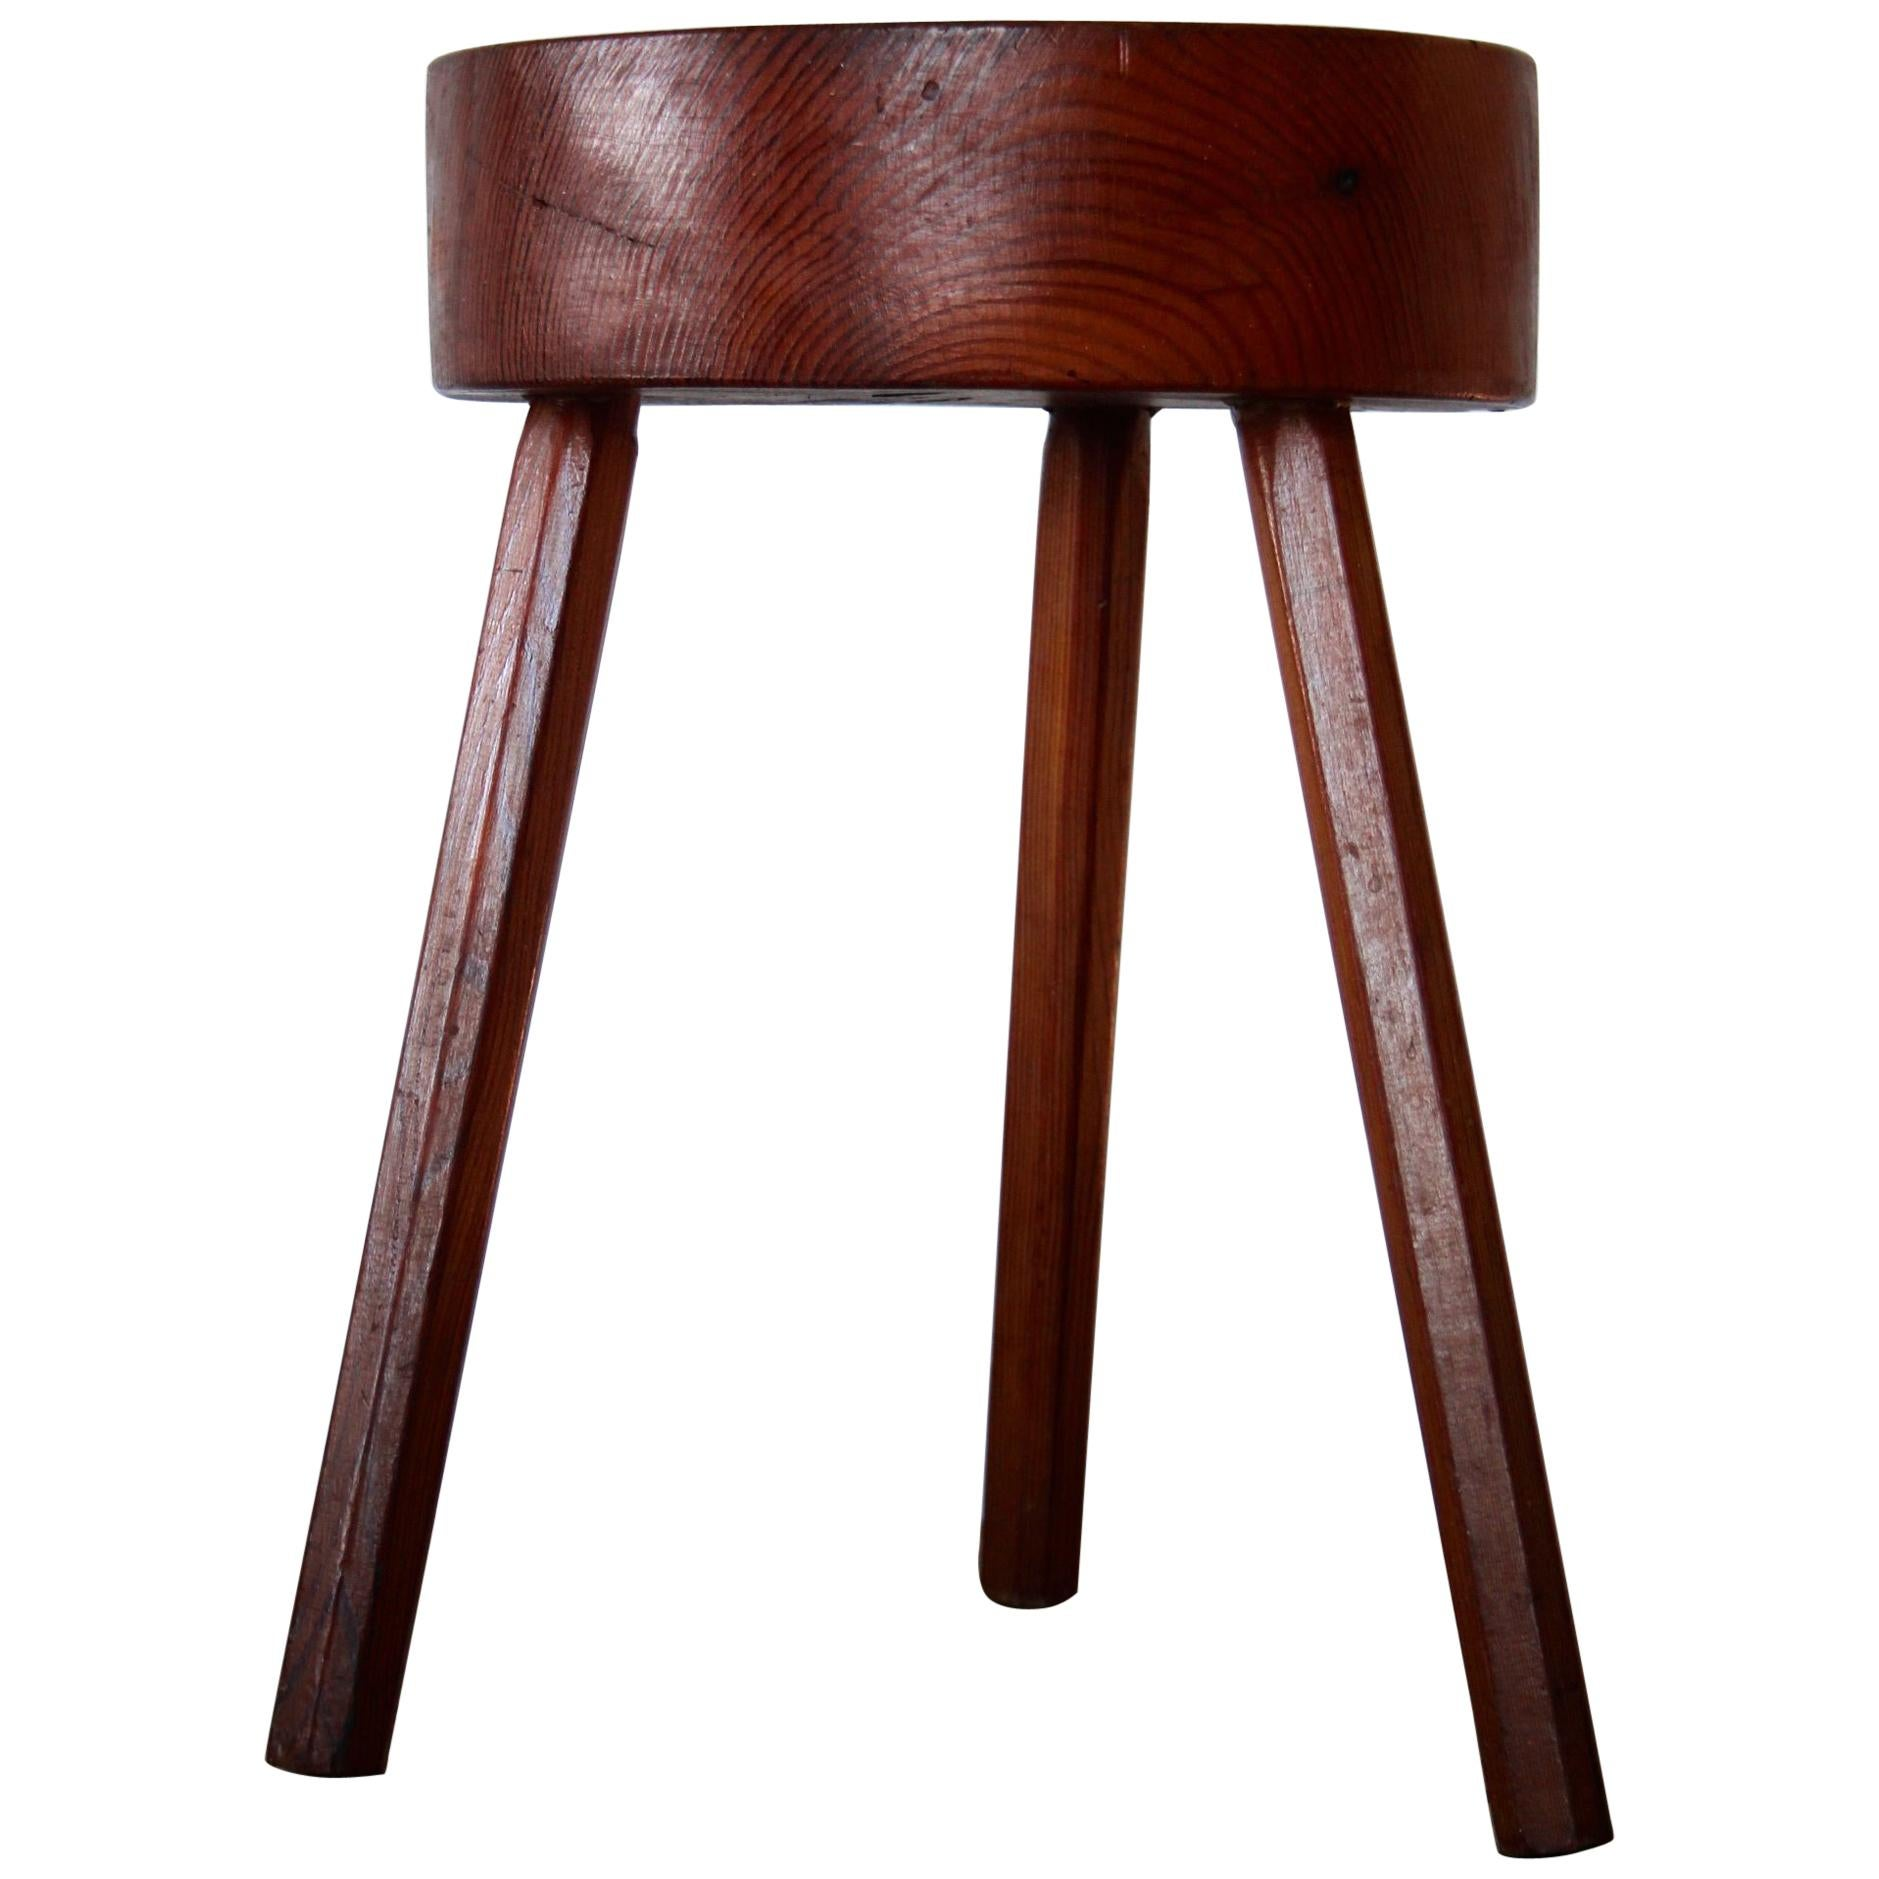 Fabulous Antique And Vintage Stools 8 297 For Sale At 1Stdibs Evergreenethics Interior Chair Design Evergreenethicsorg